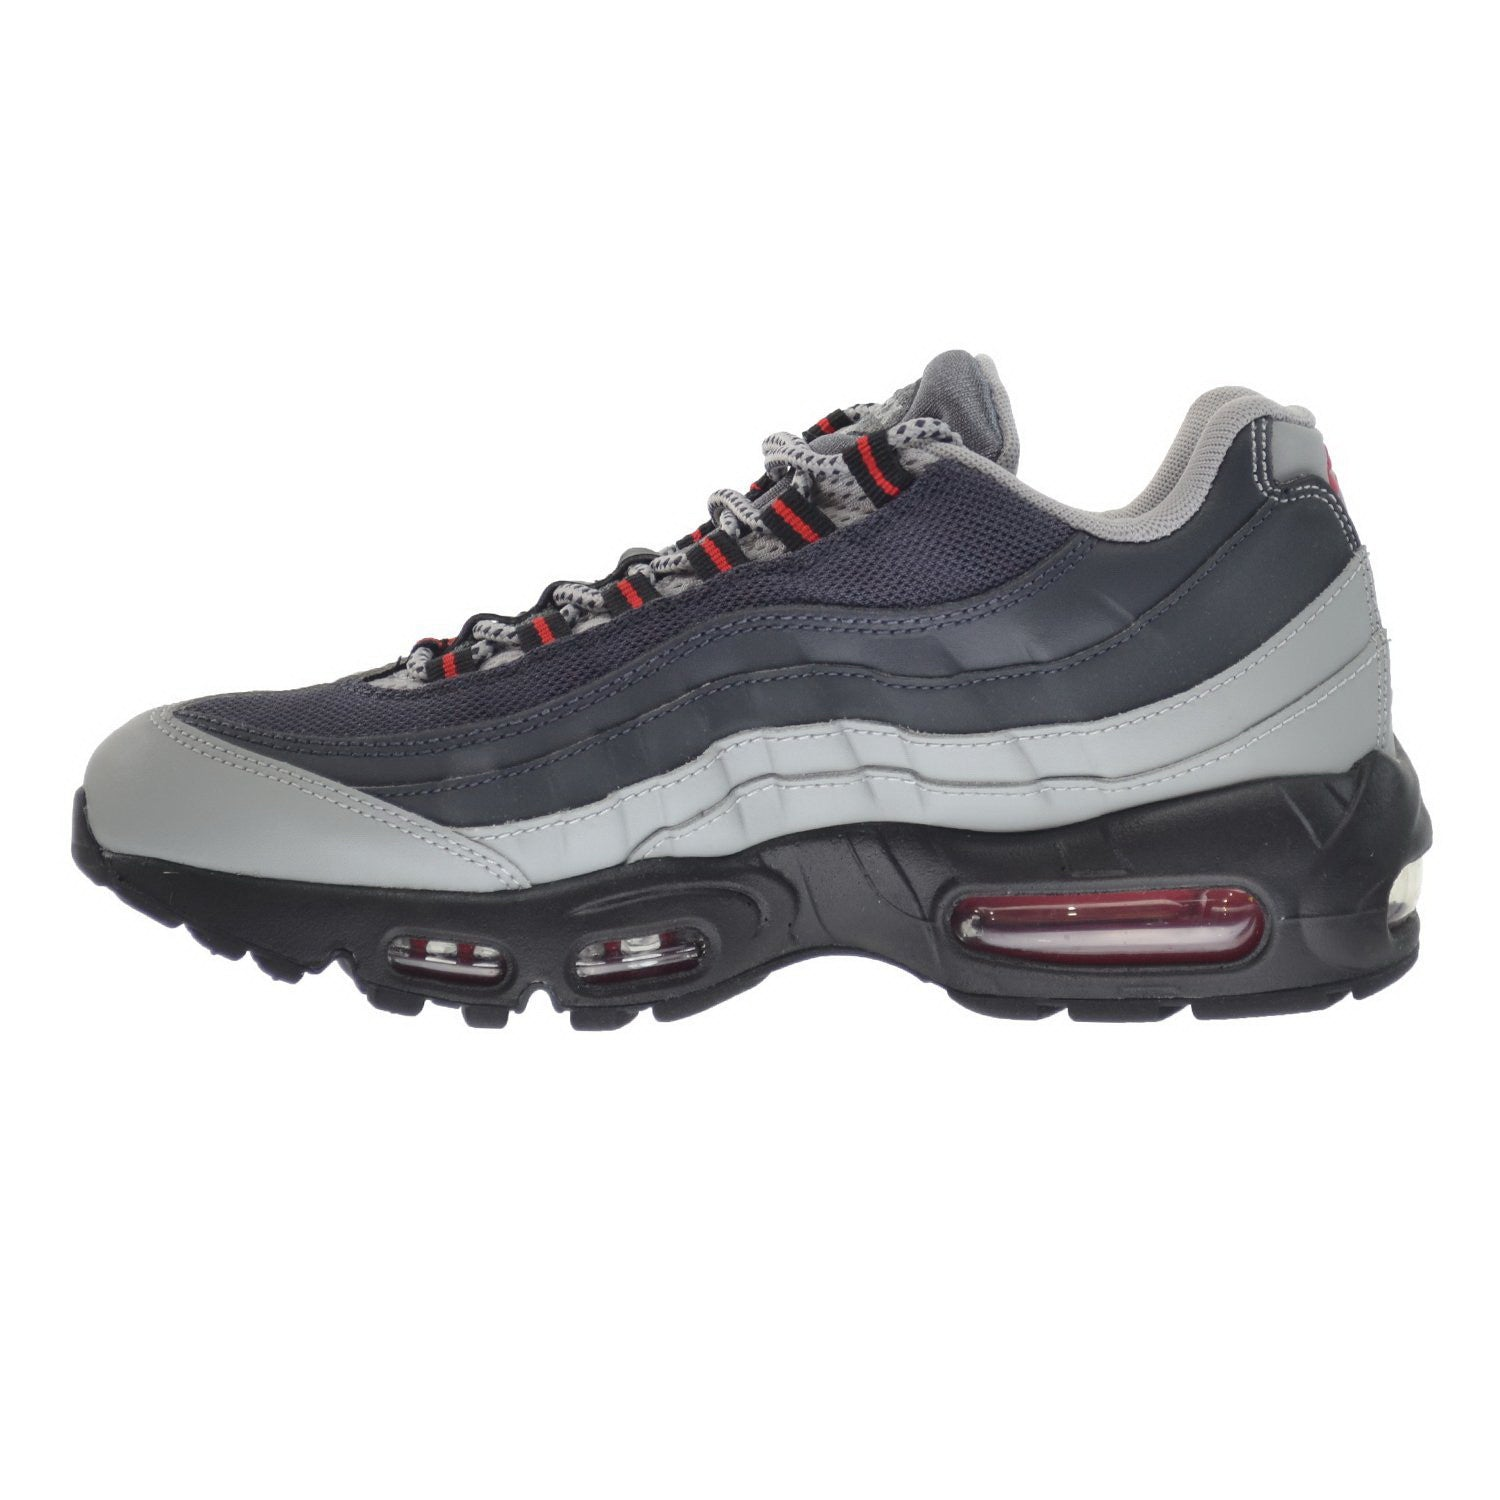 quality design c72f0 1b7dd NIKE AIR MAX 95 ESSENTIAL Mens Sneakers 749766-006 – Premium Laces NY